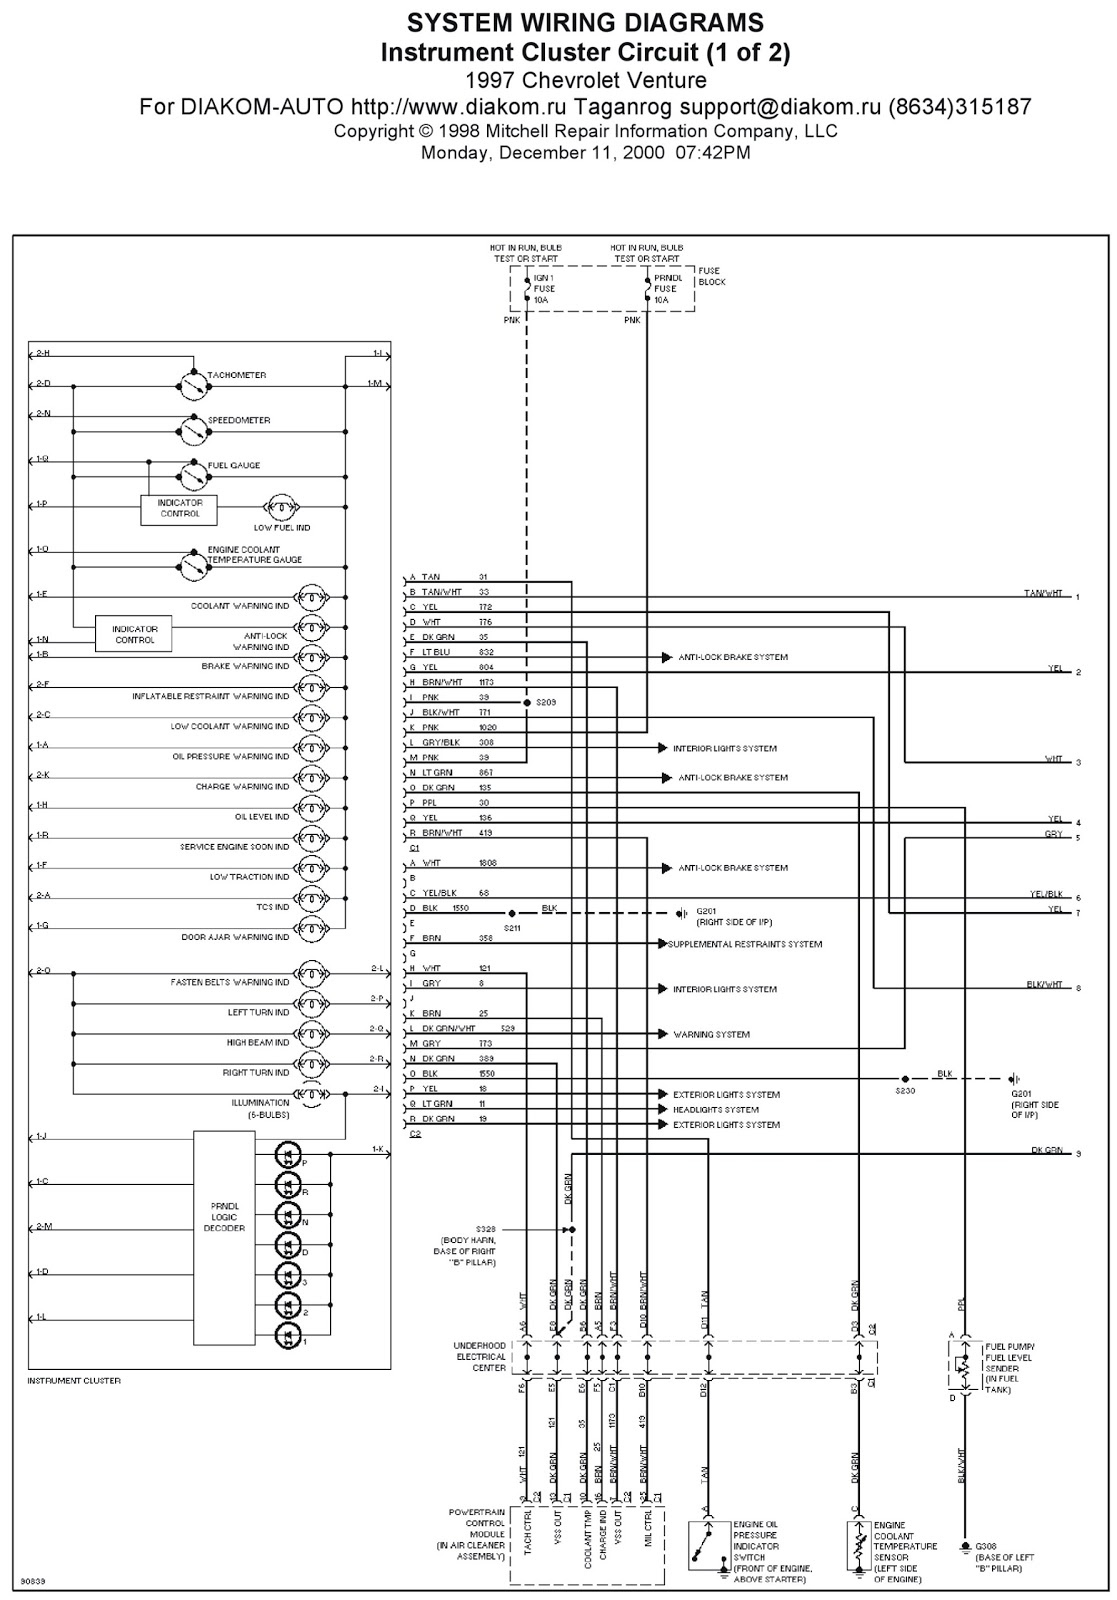 medium resolution of 1997 chevrolet venture instrument cluster circuit system wiring diagram part 1in the part two you will see the parts as follow electronic brake control